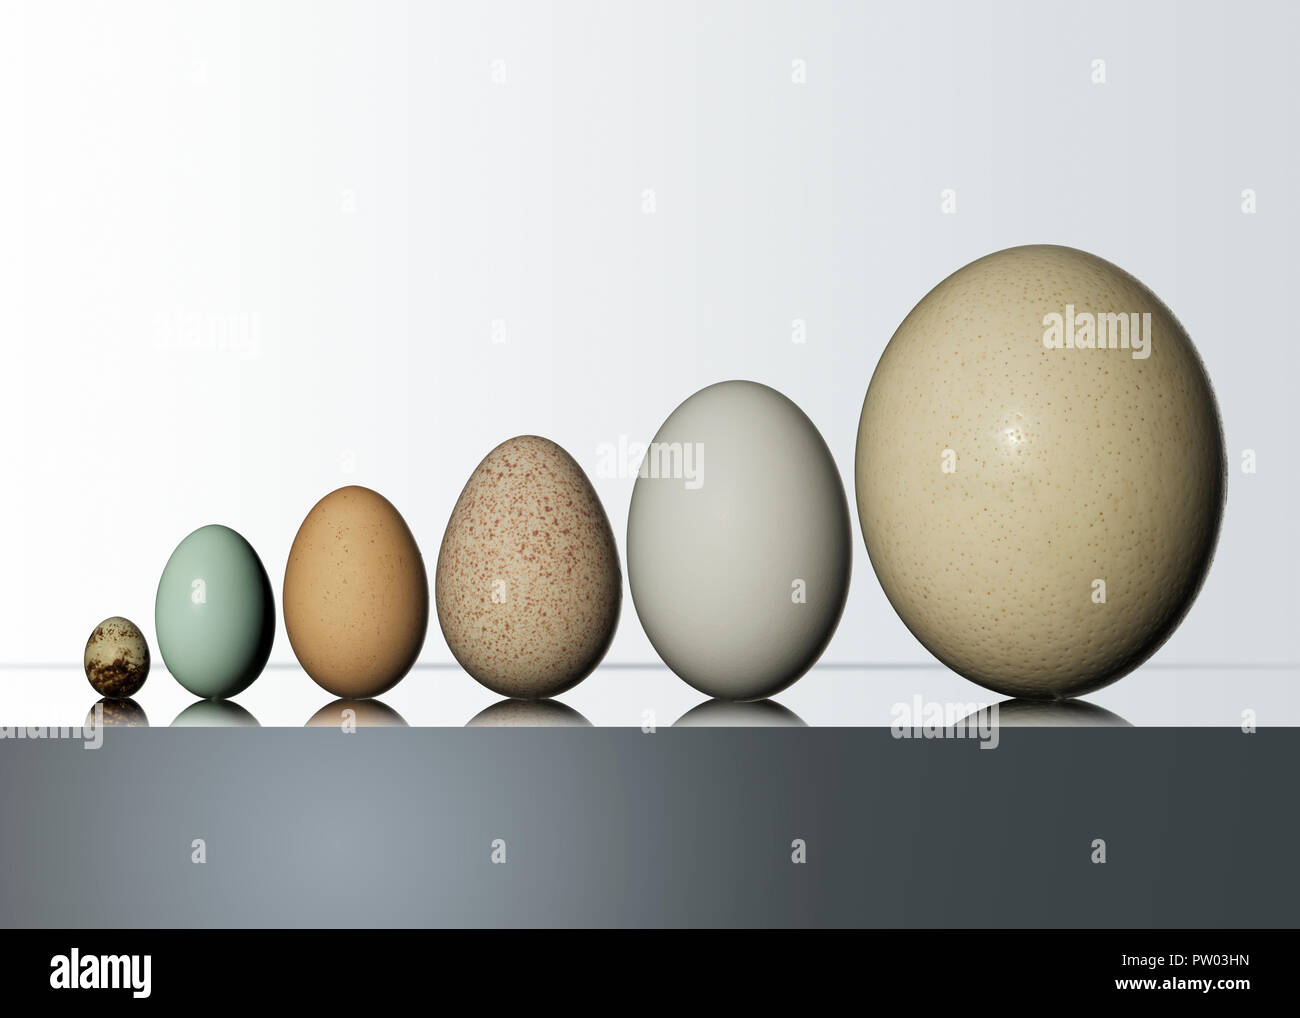 A group of Birds Eggs, Ostrich, Easter Egger, Turkey, Geese, Duck, Quail - Stock Image